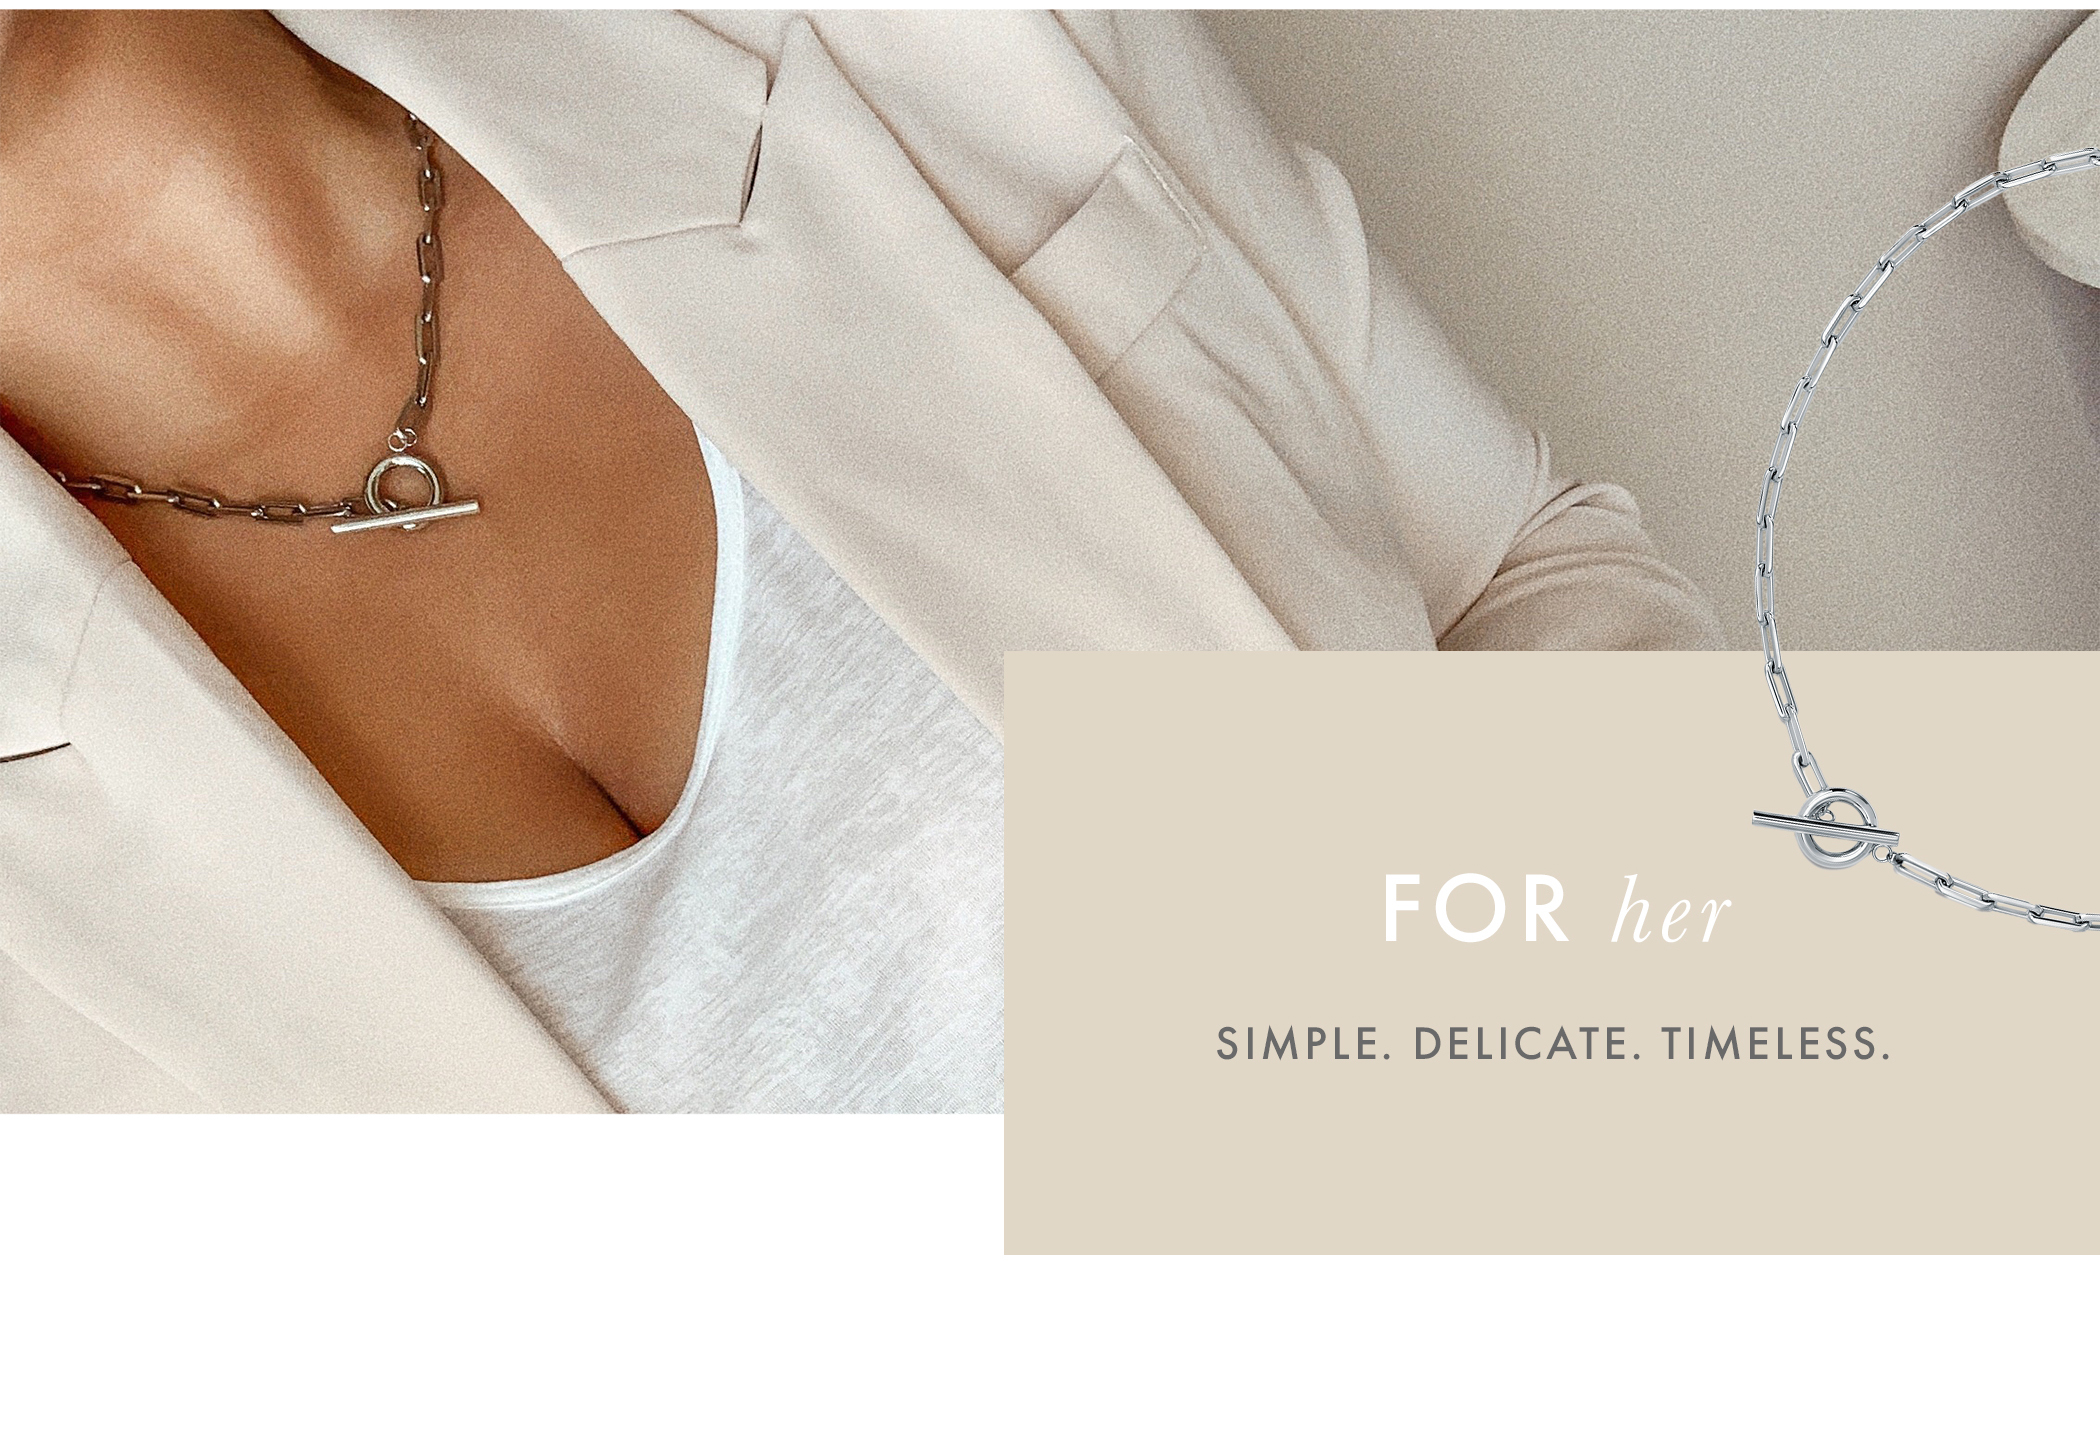 For her. Simple. Delicate. Timeless.